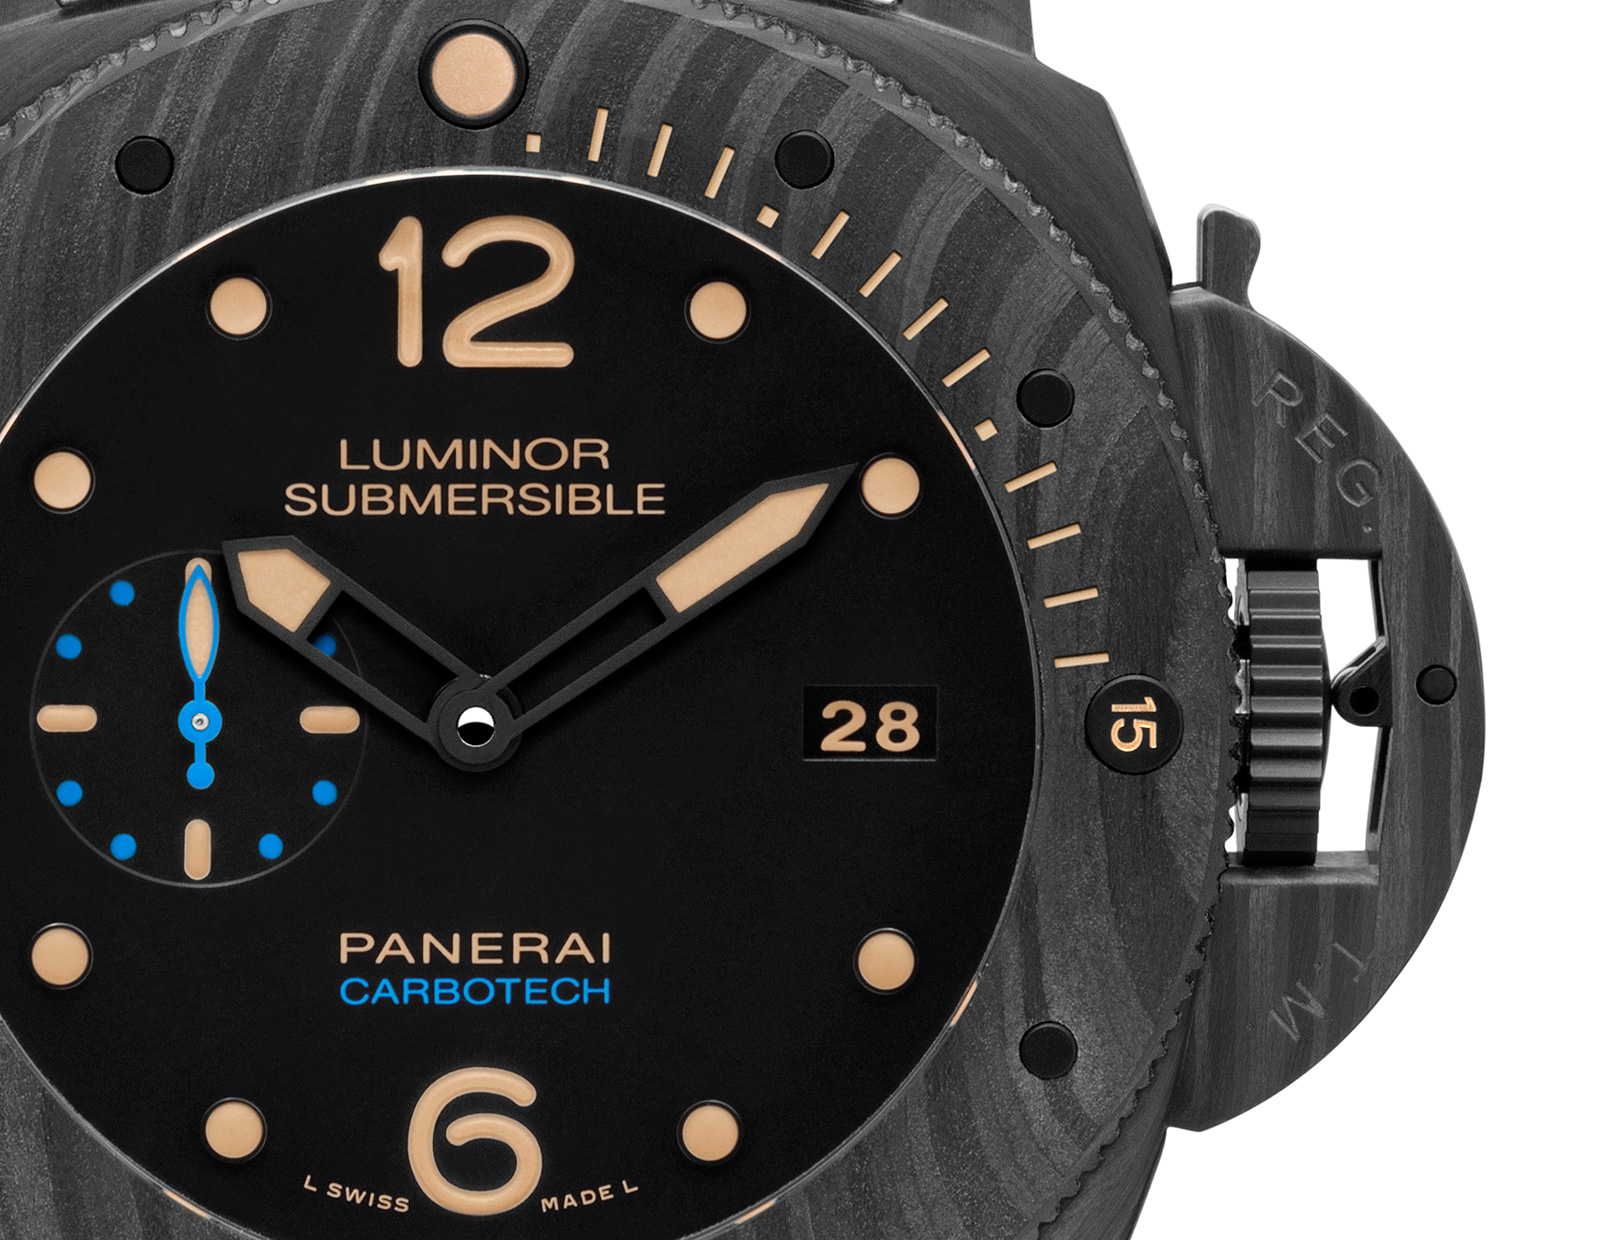 luminor panerai watches days gmt acciaio collections watch adapt gallery en collection